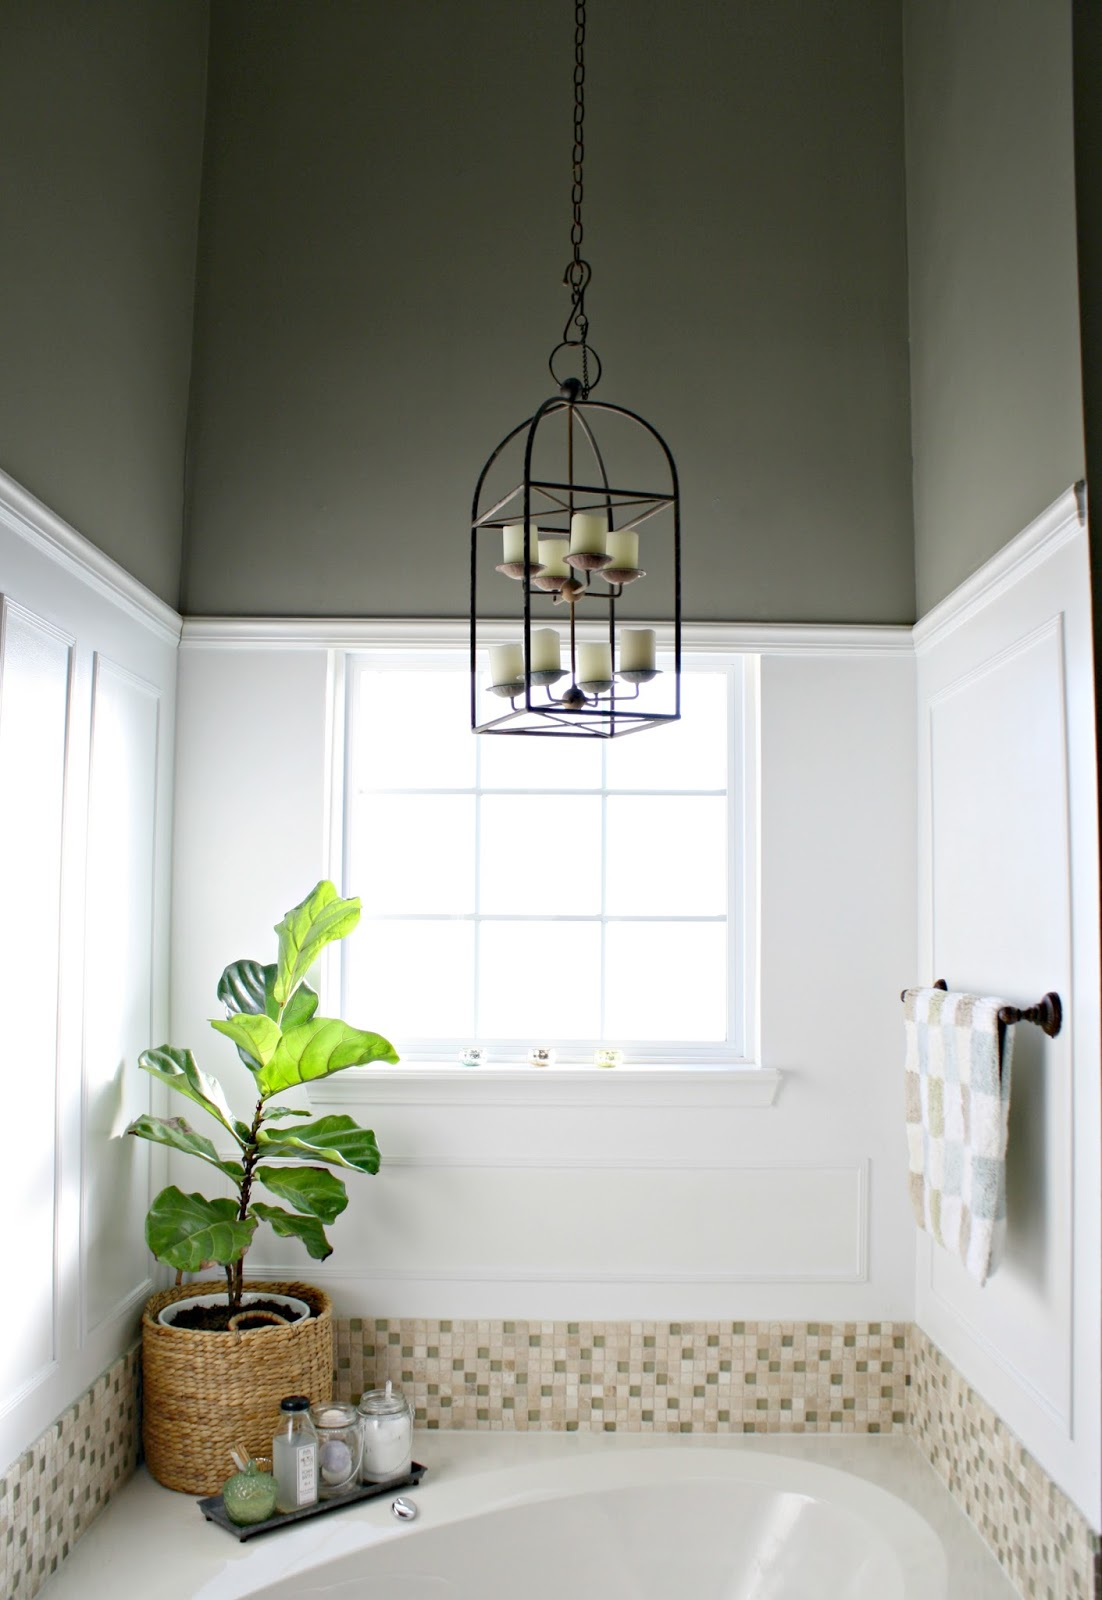 Simple Updates in the Master Bath from Thrifty Decor Chick